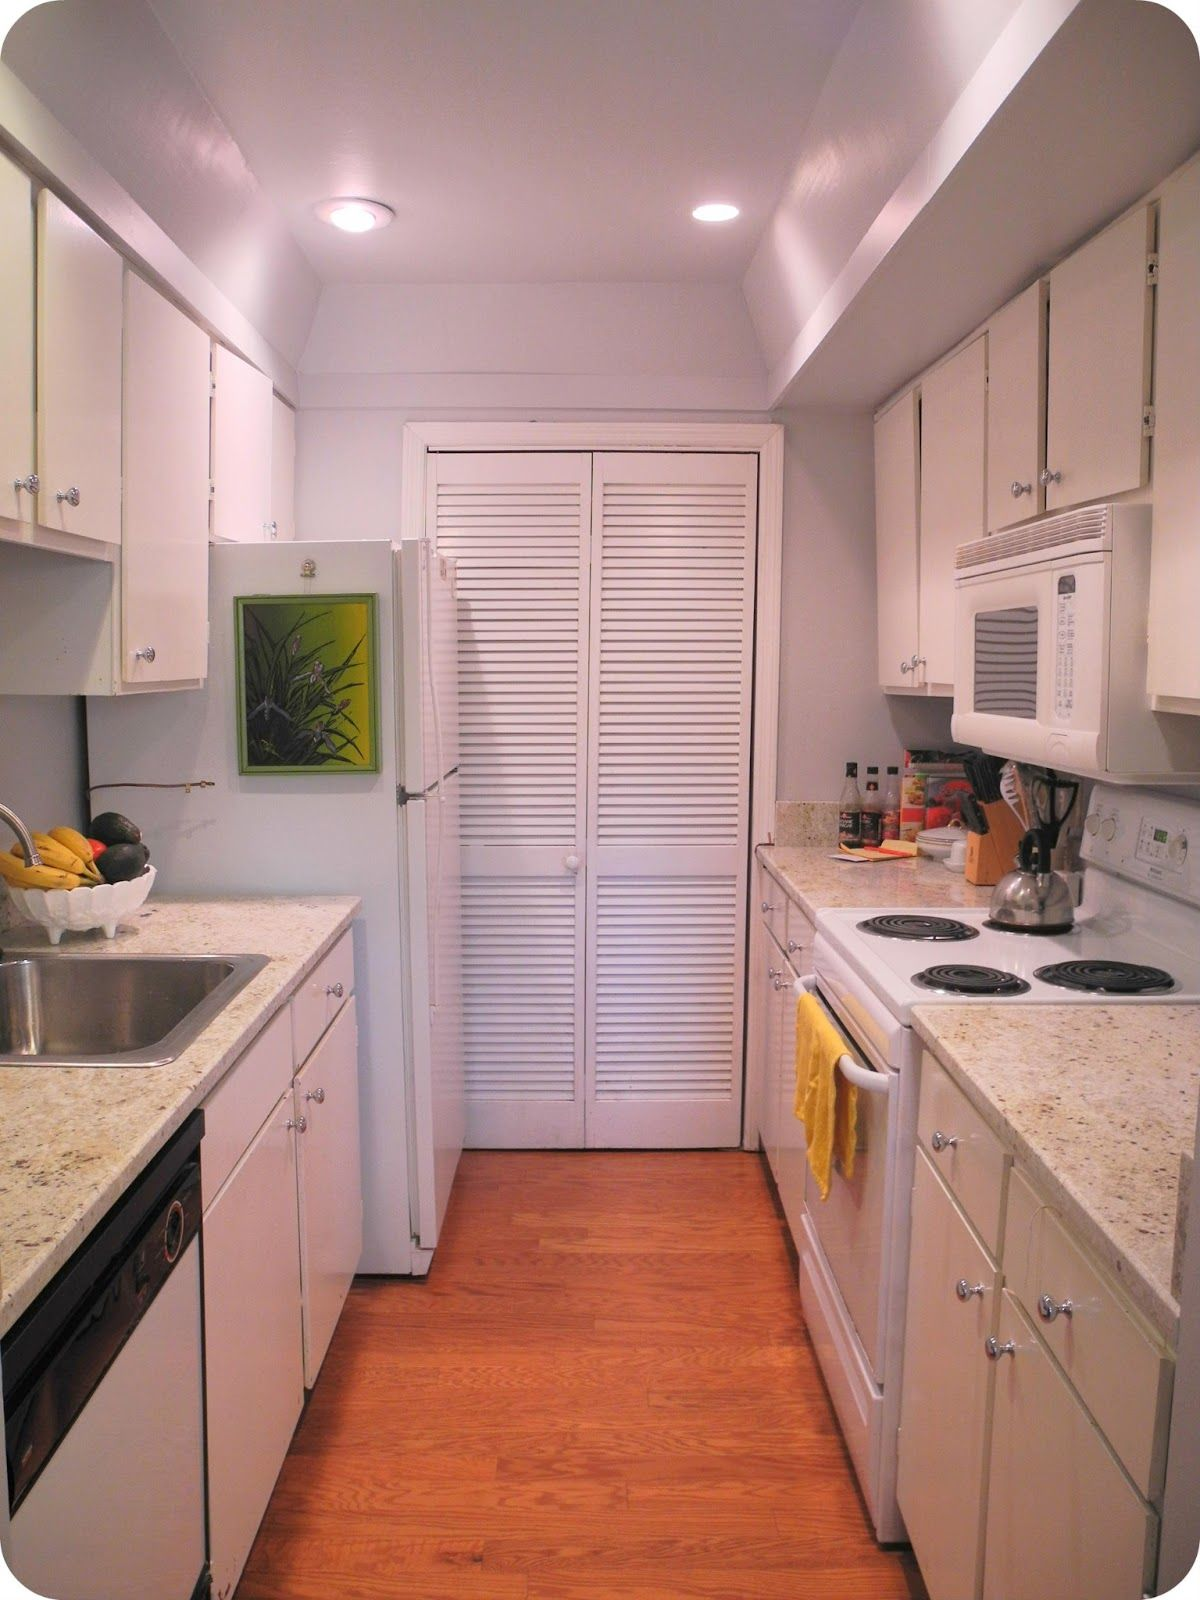 Galley Kitchen Ideas Paint Galley Kitchen Remodel Kitchen Remodel Small Galley Kitchen Design